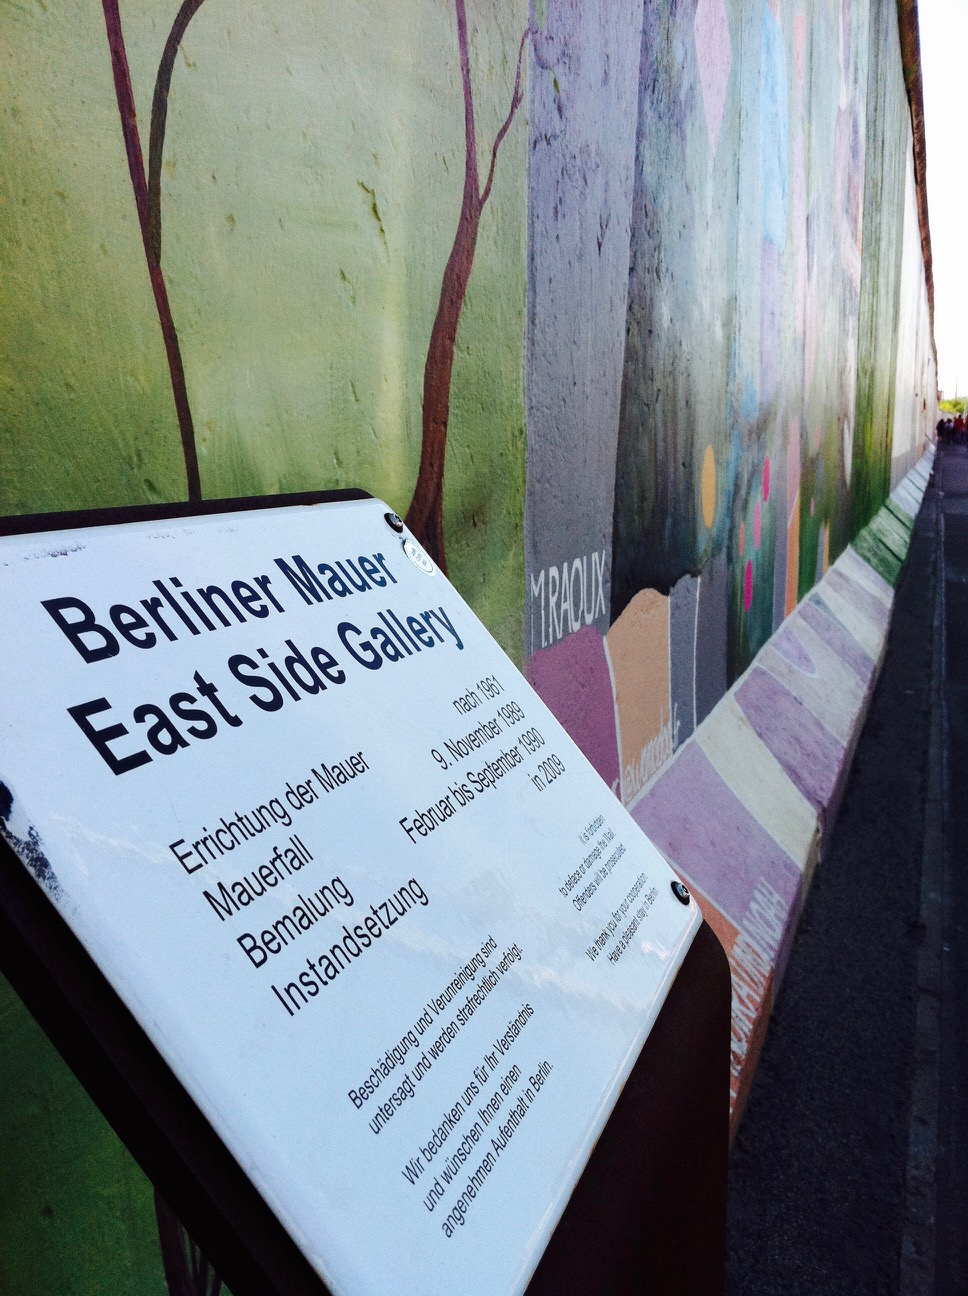 Eastside-Gallery